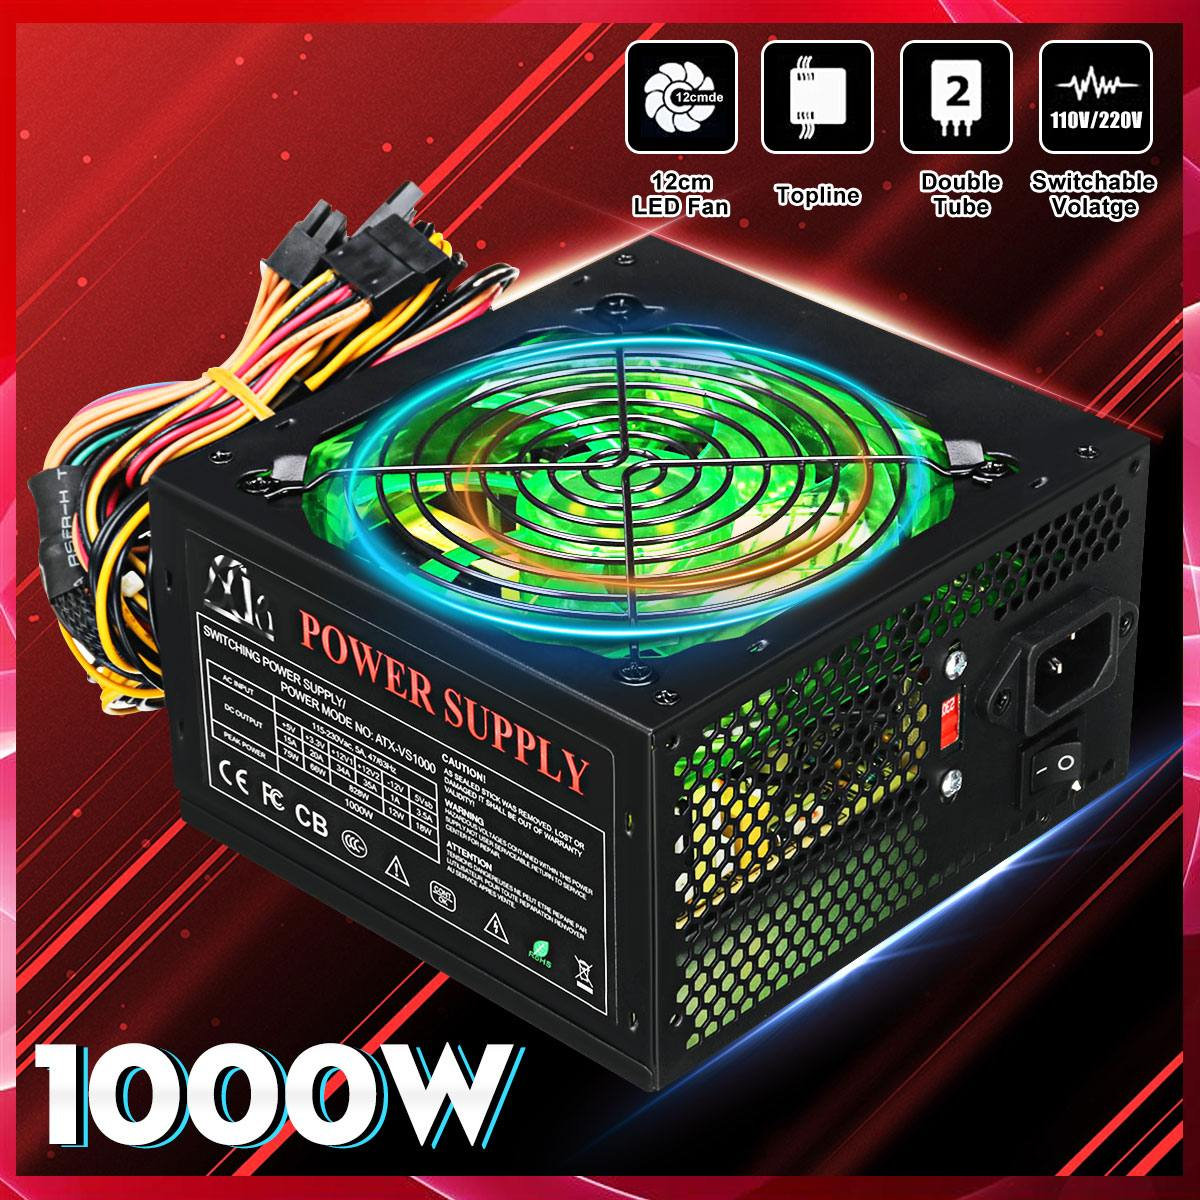 1000W 110~220V Power Supply PSU PFC 12cm LED Silent Fan ATX 24pin 12V PC Computer SATA Gaming Supply For Intel AMD Desktop|PC Power Supplies| |  - title=